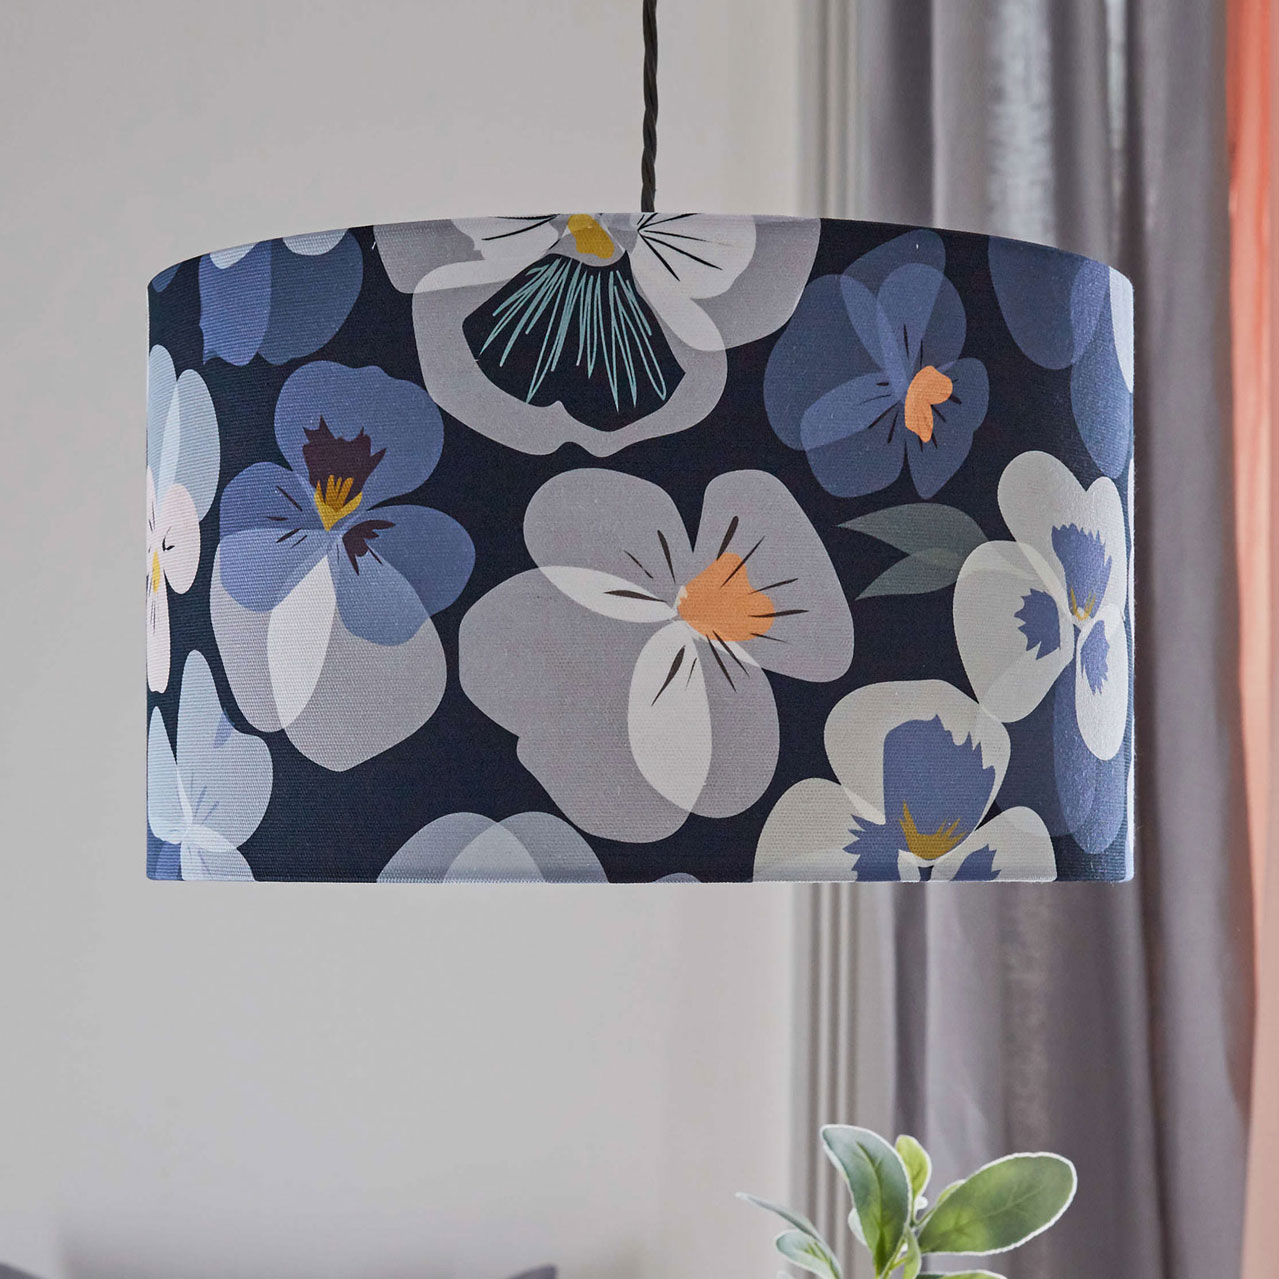 floral lampshade - pansy design - blue and pink hues - lorna syson homeware